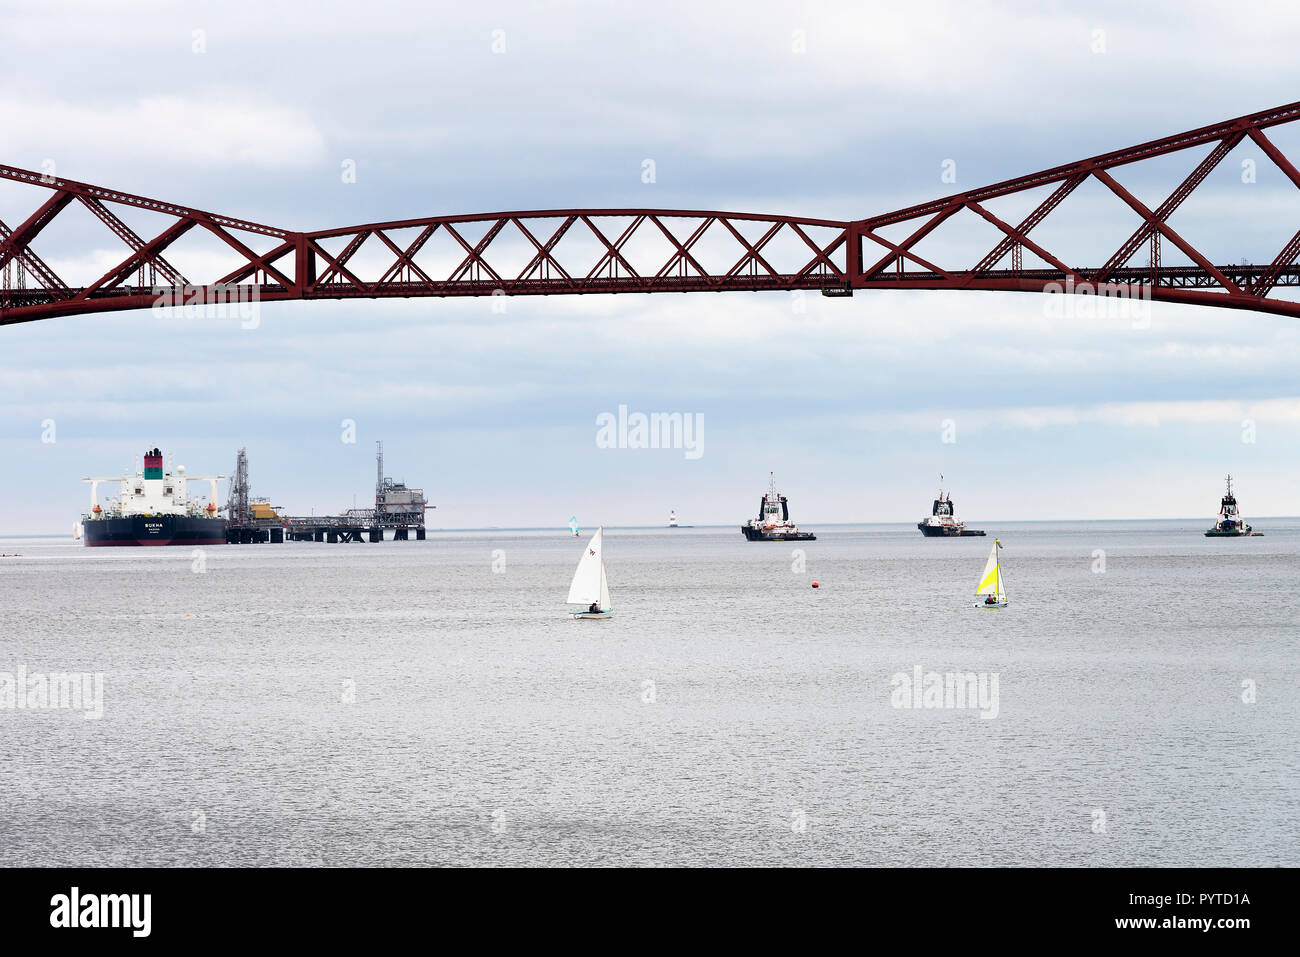 The Forth Rail Bridge Crossing the Firth of Forth with a the Crude Oil Tanker Bukha Discharging Oil at South Queensferry Edinburgh Scotland UK - Stock Image